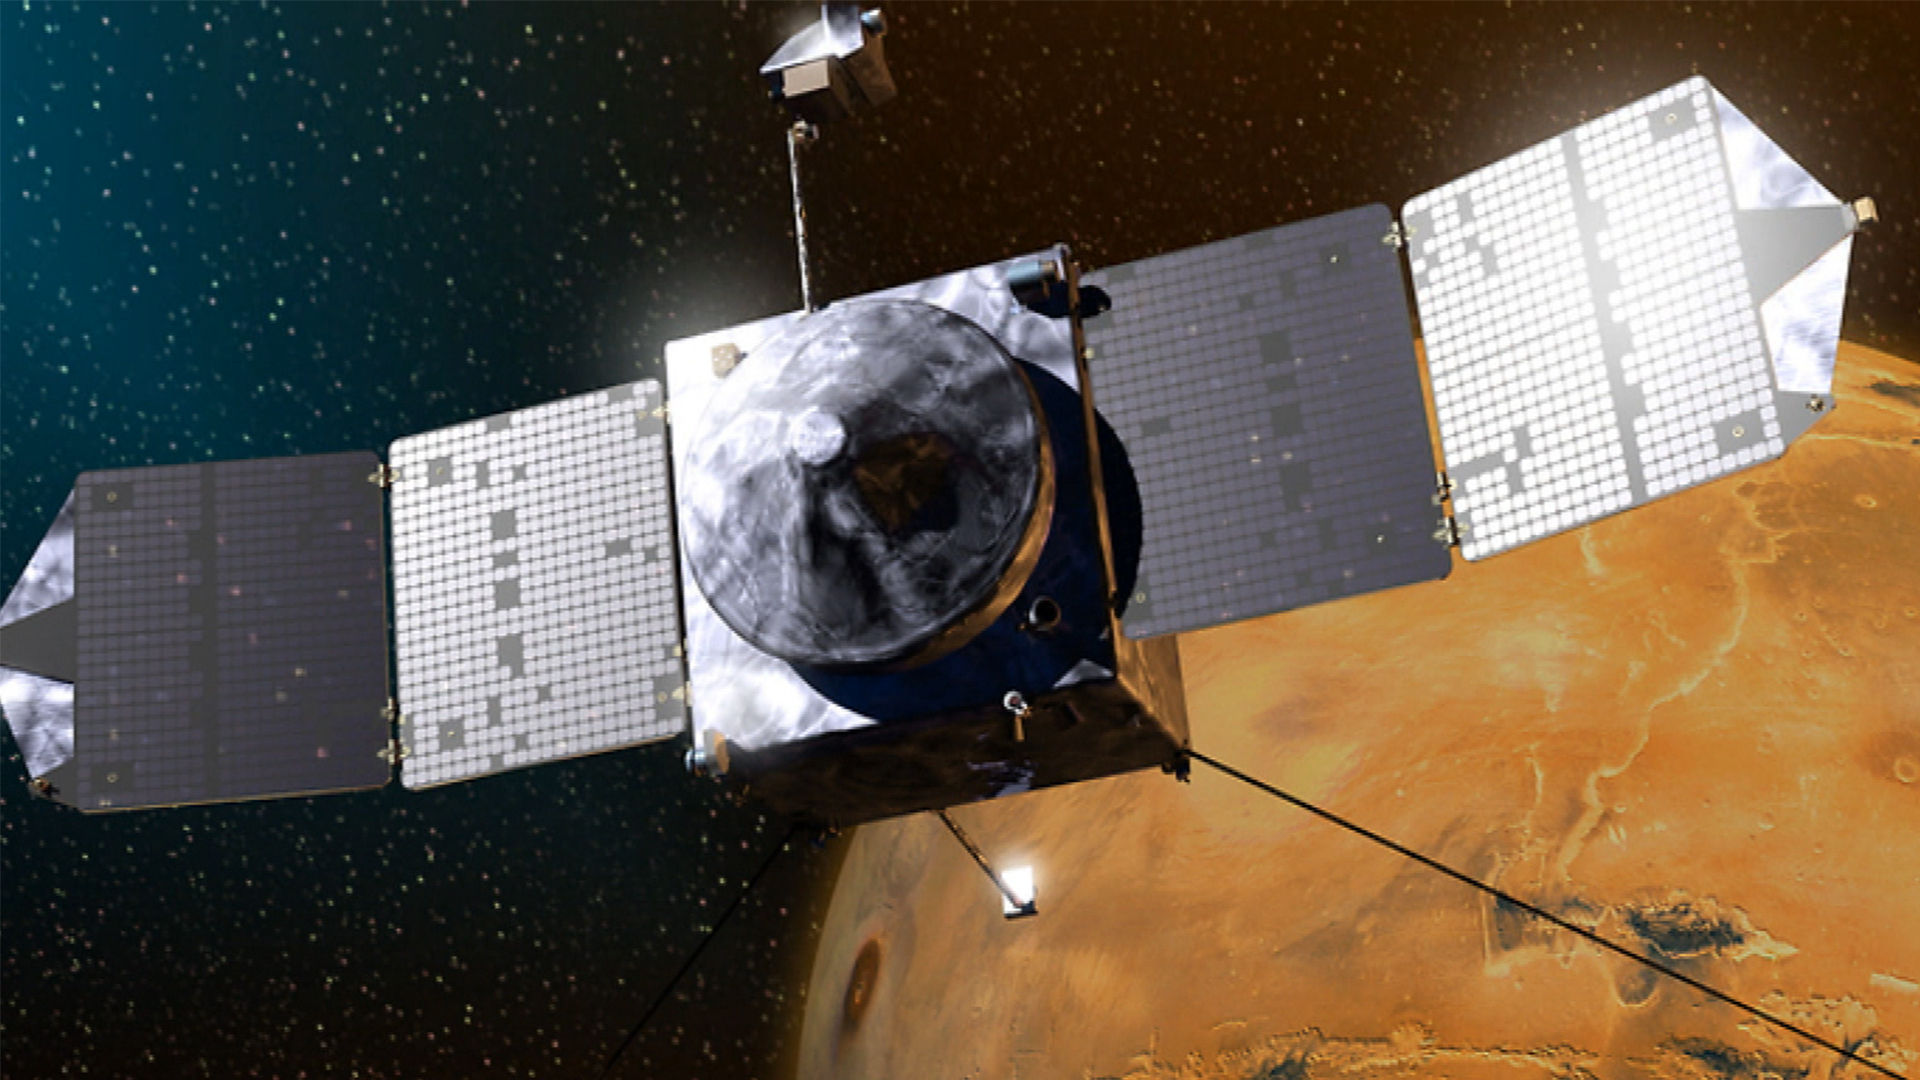 NASA's MAVEN Mission reaches Mars - NBC News